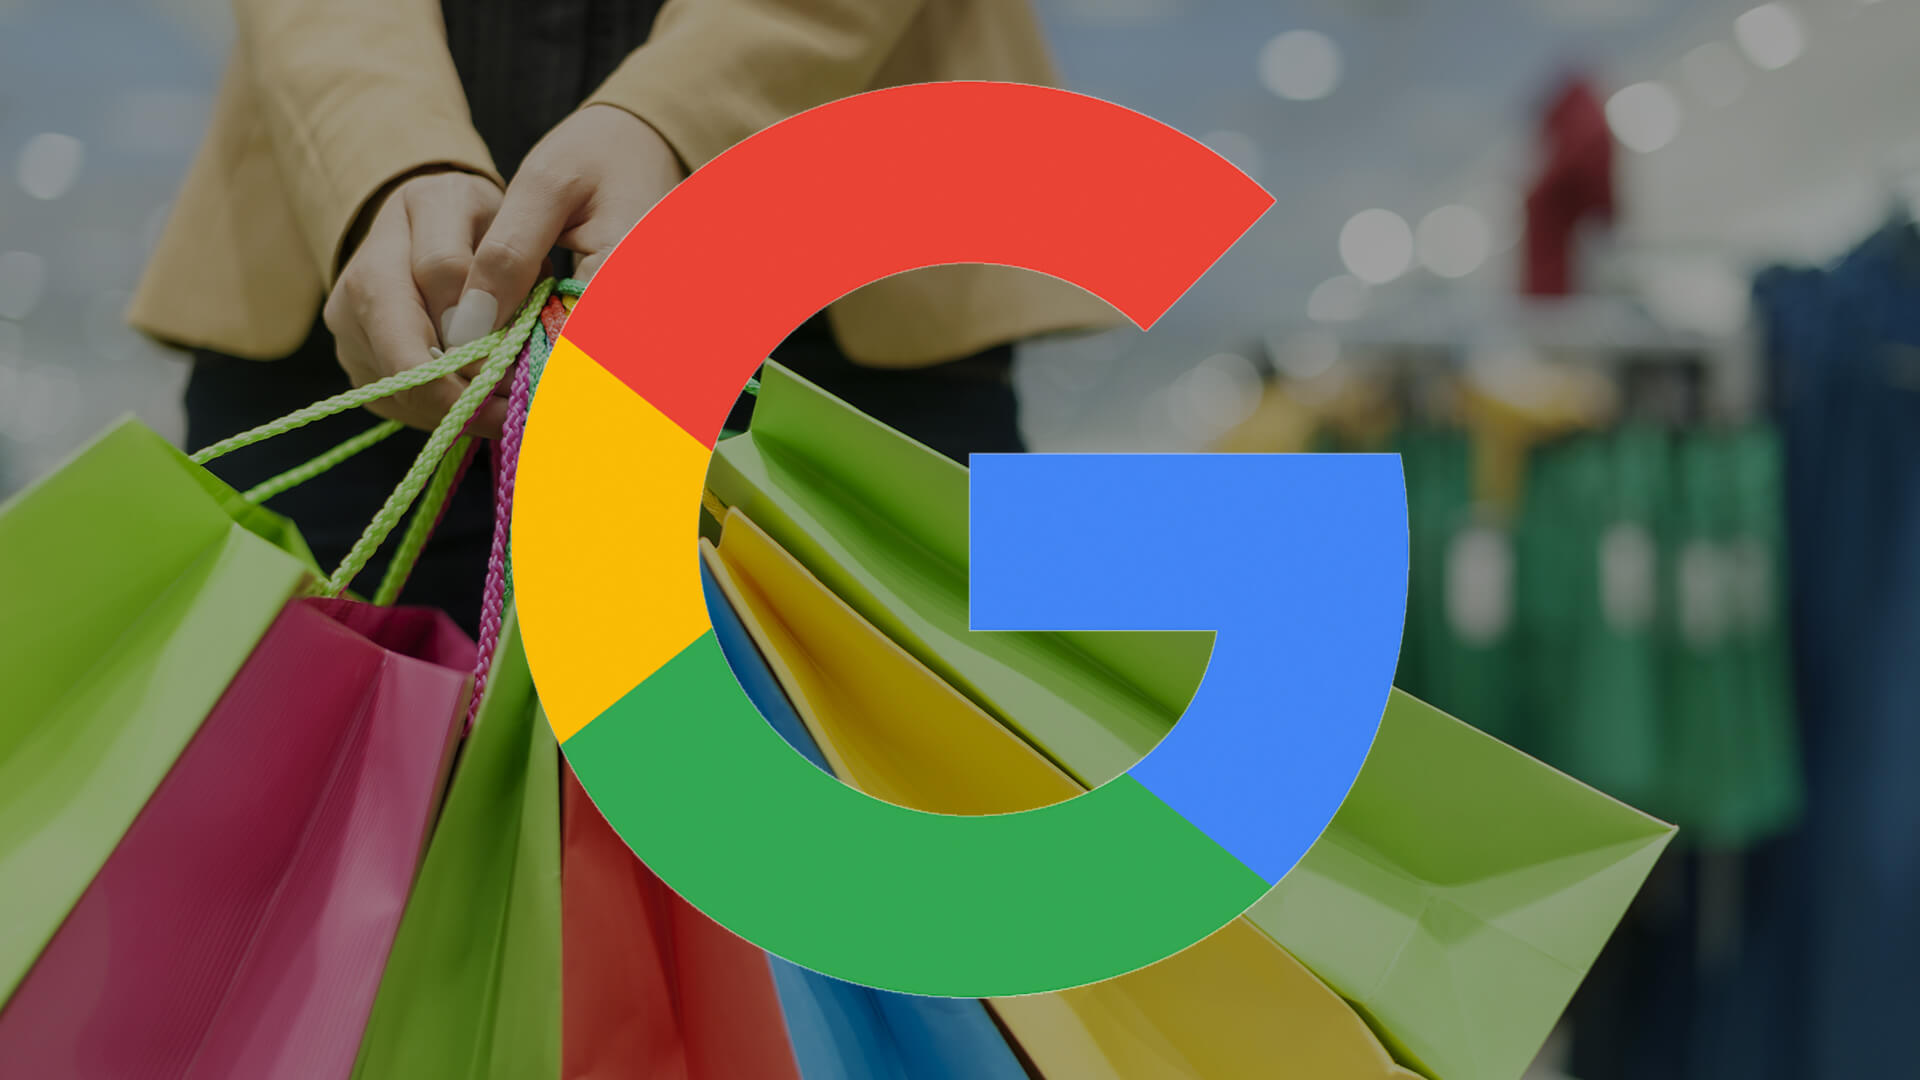 PPC - Google brings personalized Shopping, local inventory and better checkout to U.S.